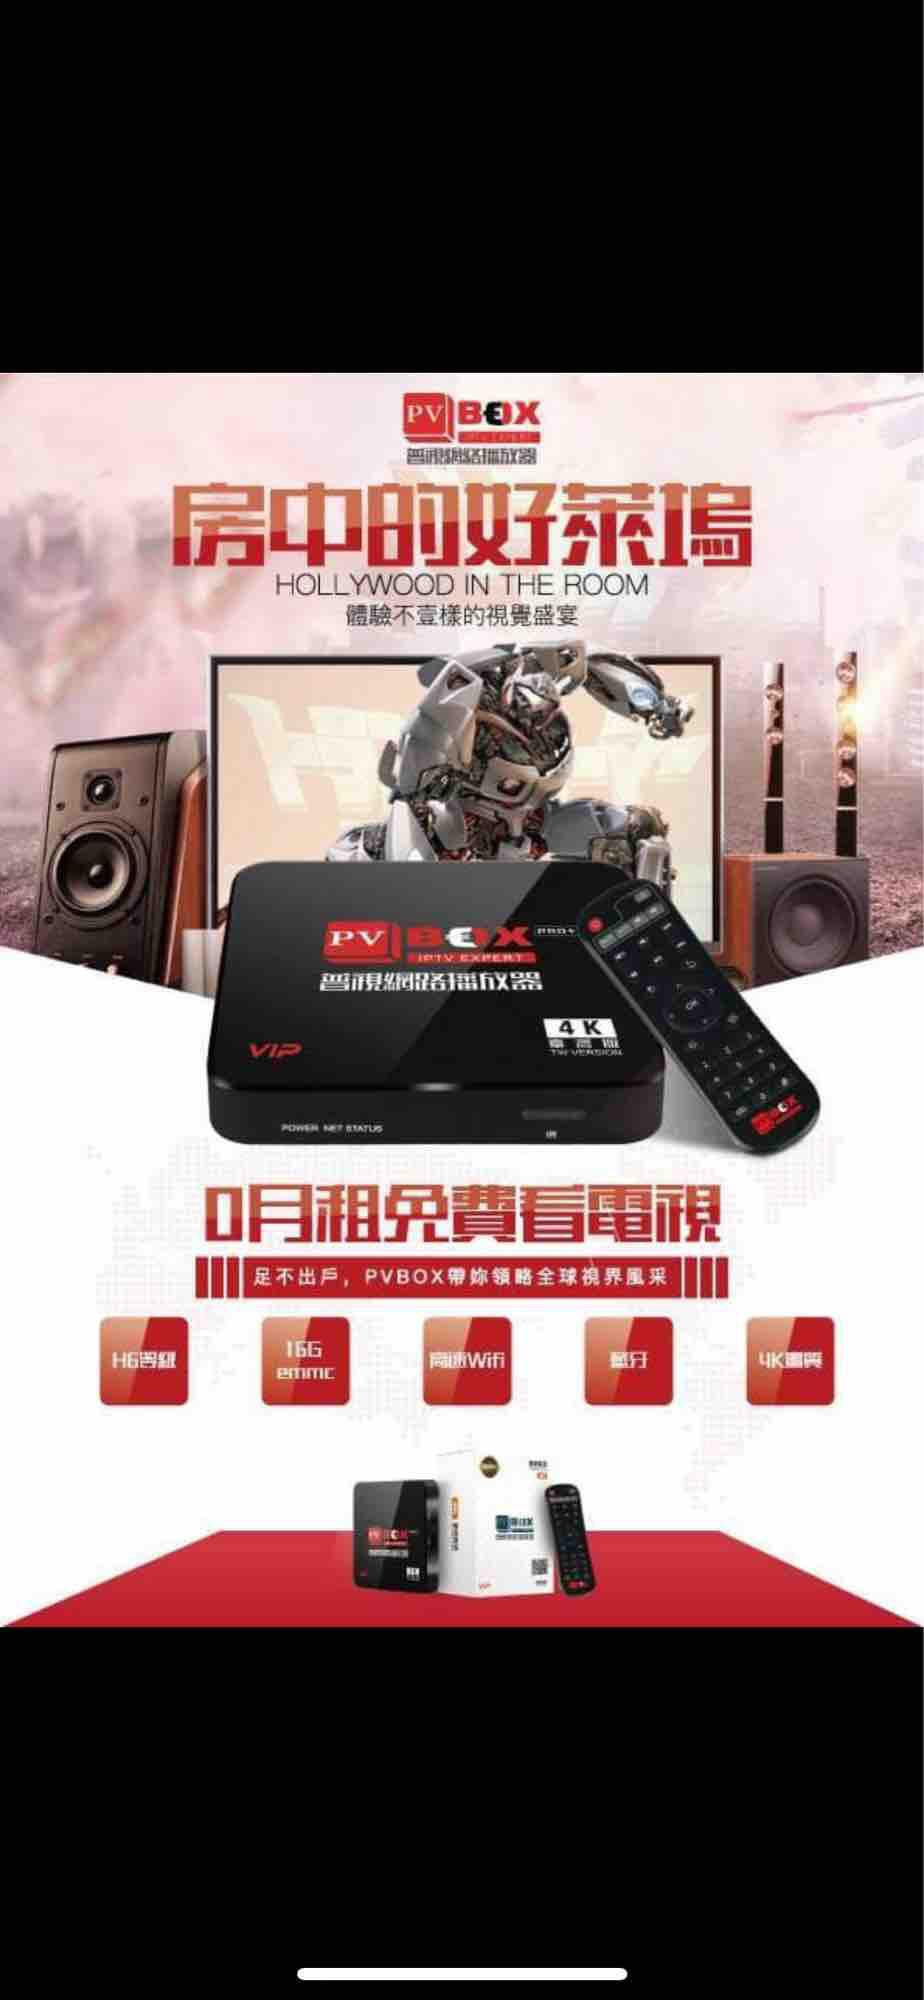 Best Pv Tv Box 2019 ( 4G & 5G Network )